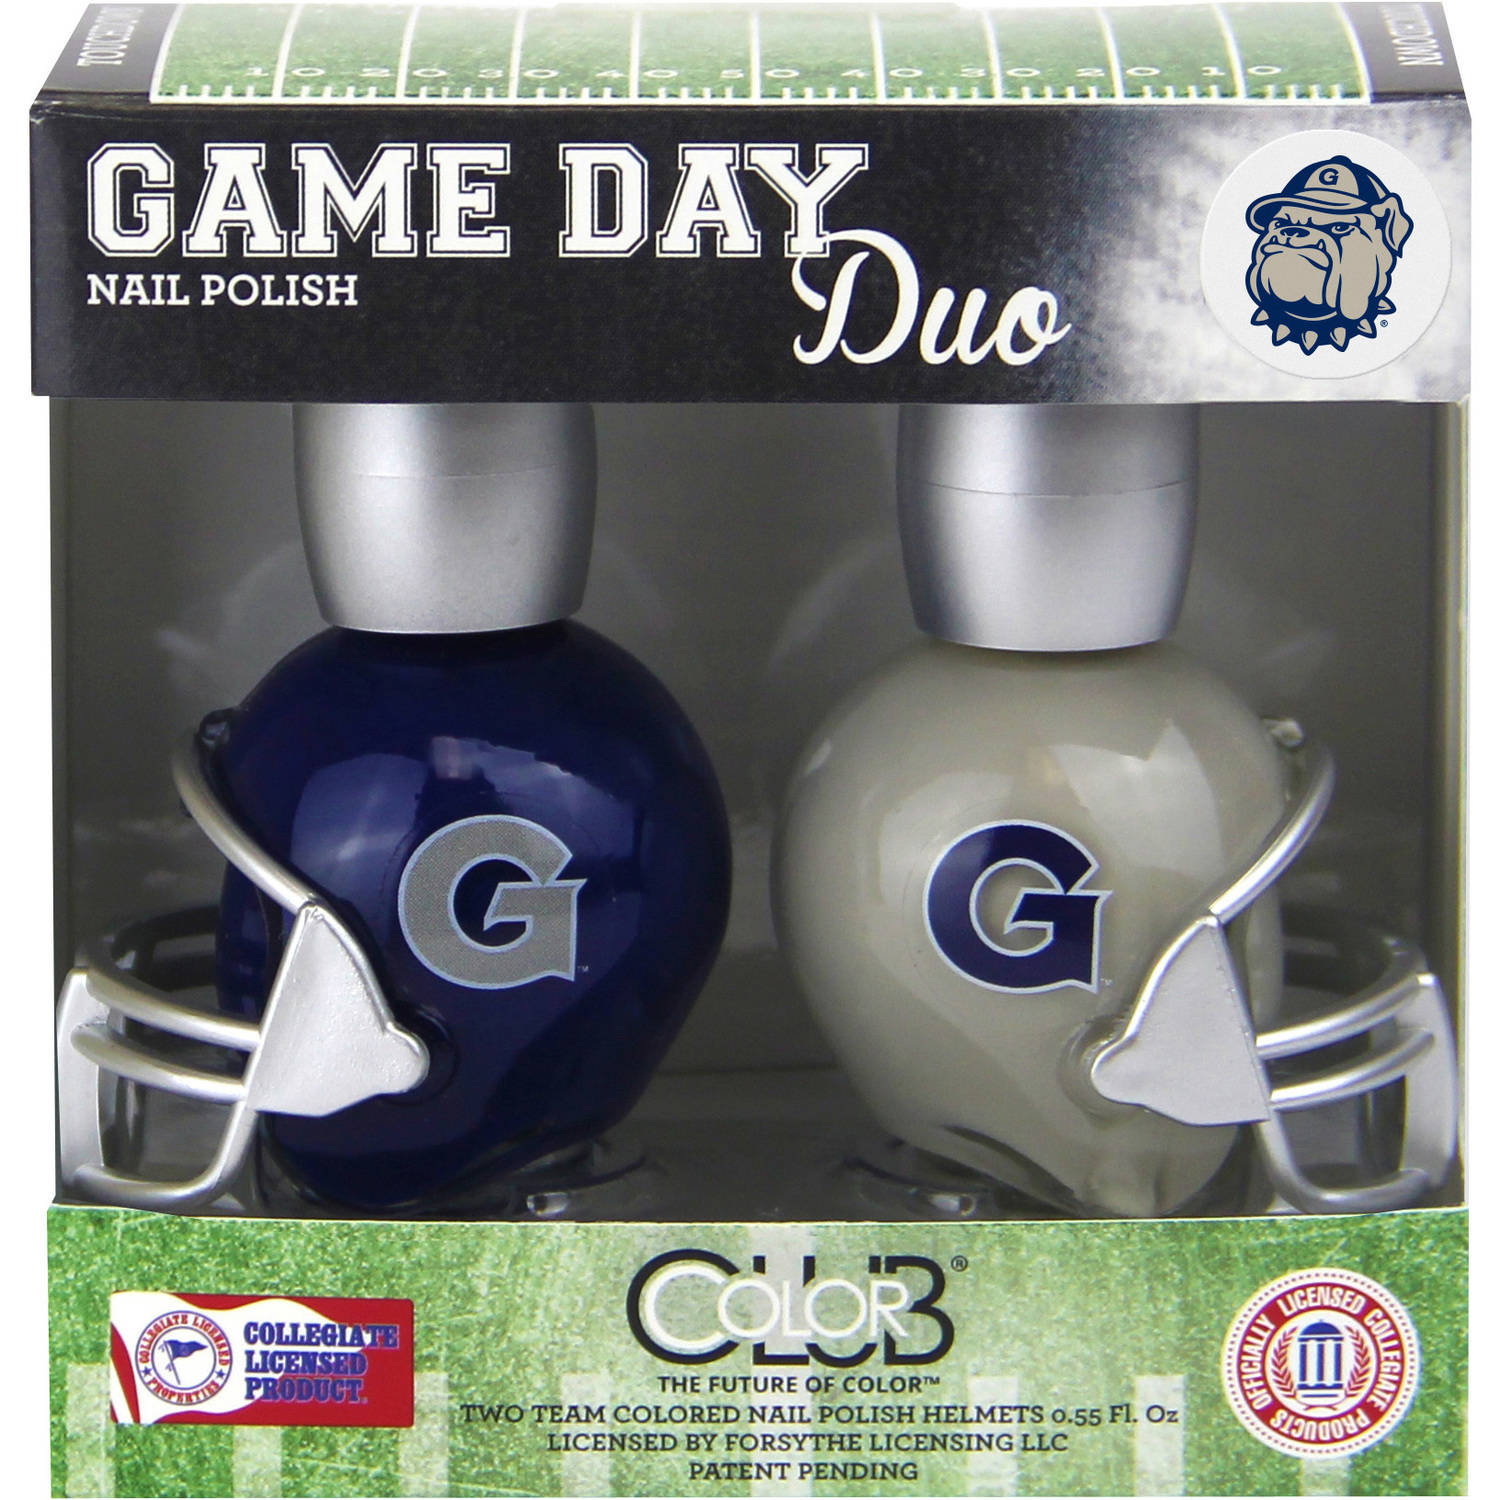 Color Club Game Day Duo Nail Polish, Georgetown, .55 fl oz, 2 count